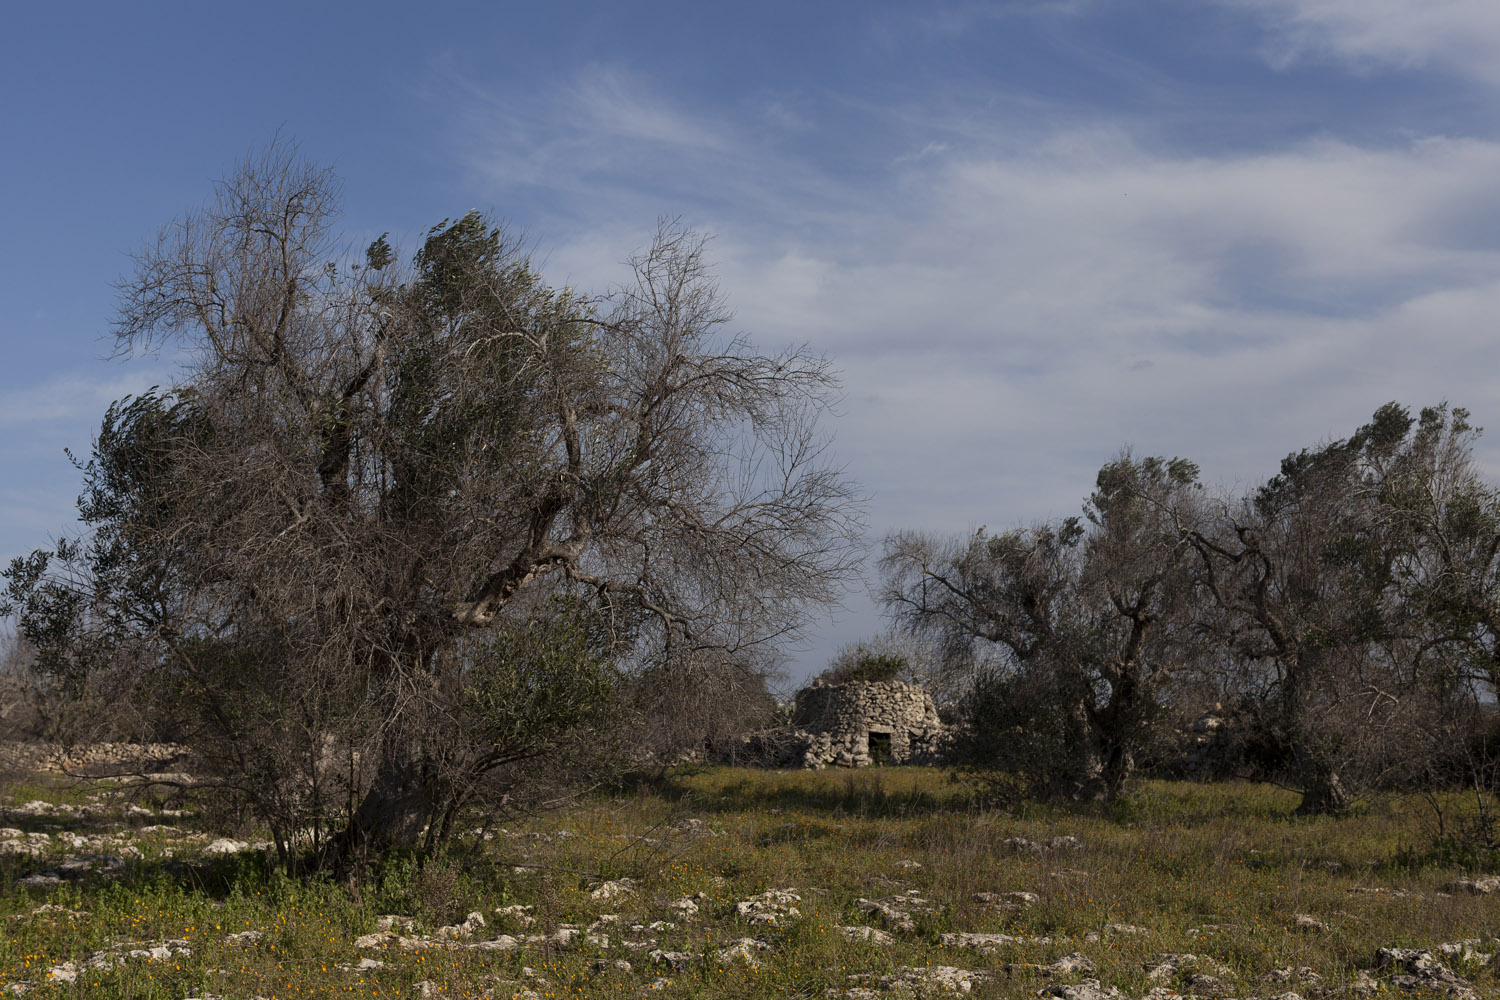 Desiccated olive trees in the countryside of Salento. Because of widespread emigration and the low price of olive oil, many of the area's olive groves were already abandoned before the Xylella fastidiosa outbreak, and are now simply left to wither and die. (2017)